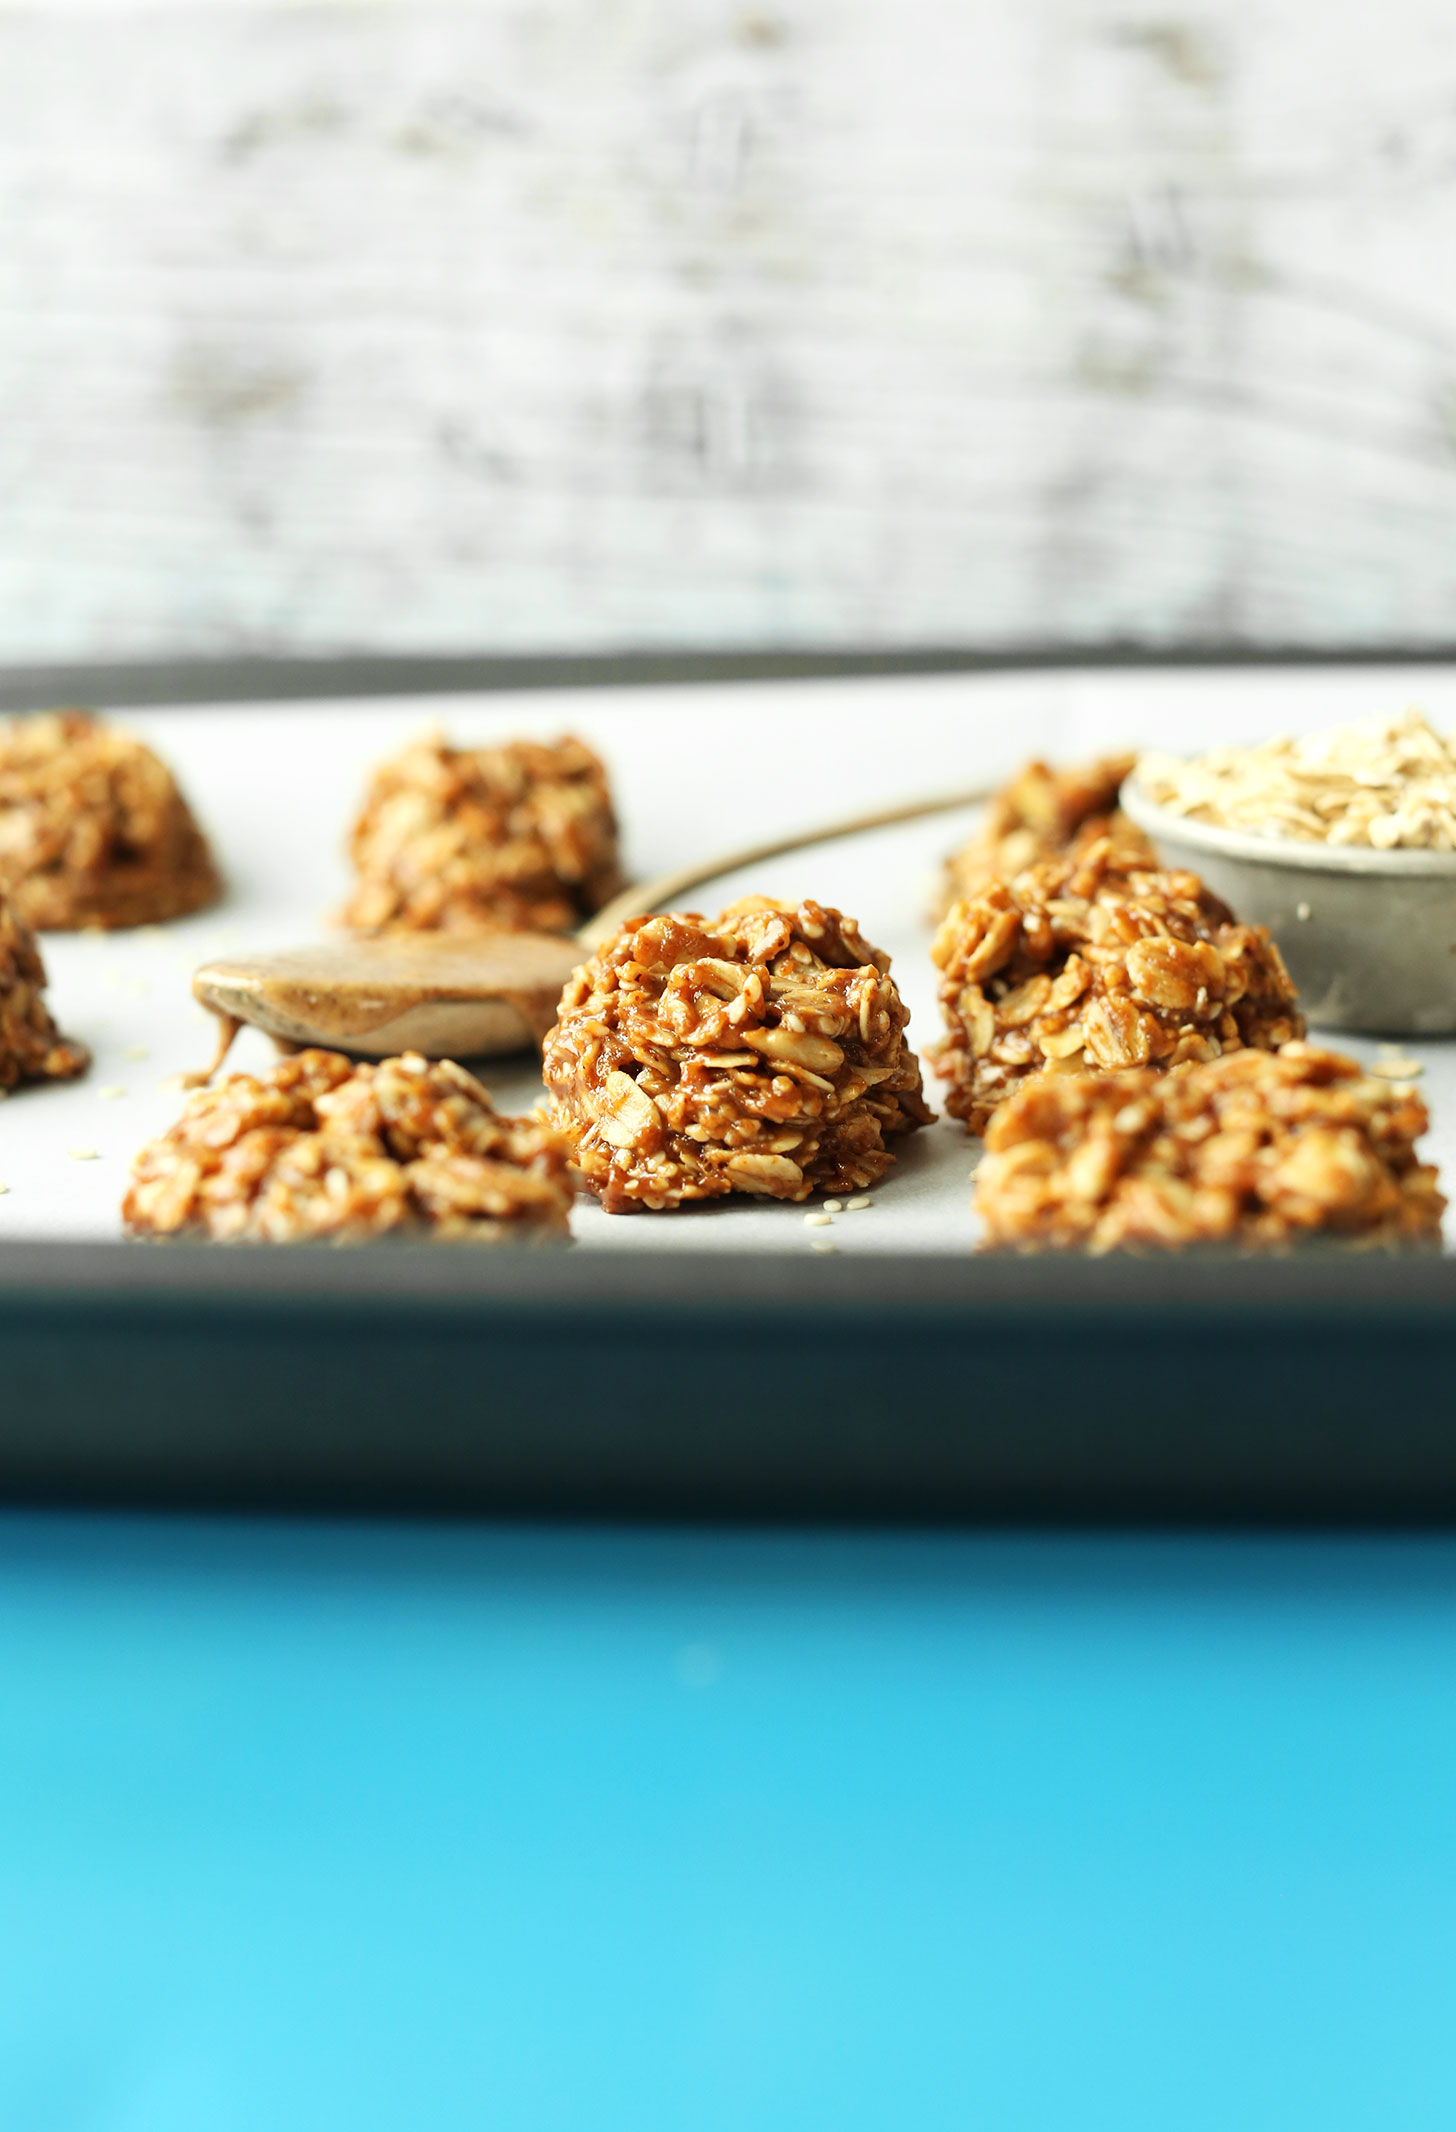 Naturally-sweetened Almond Butter No-Bake Cookies on a baking sheet